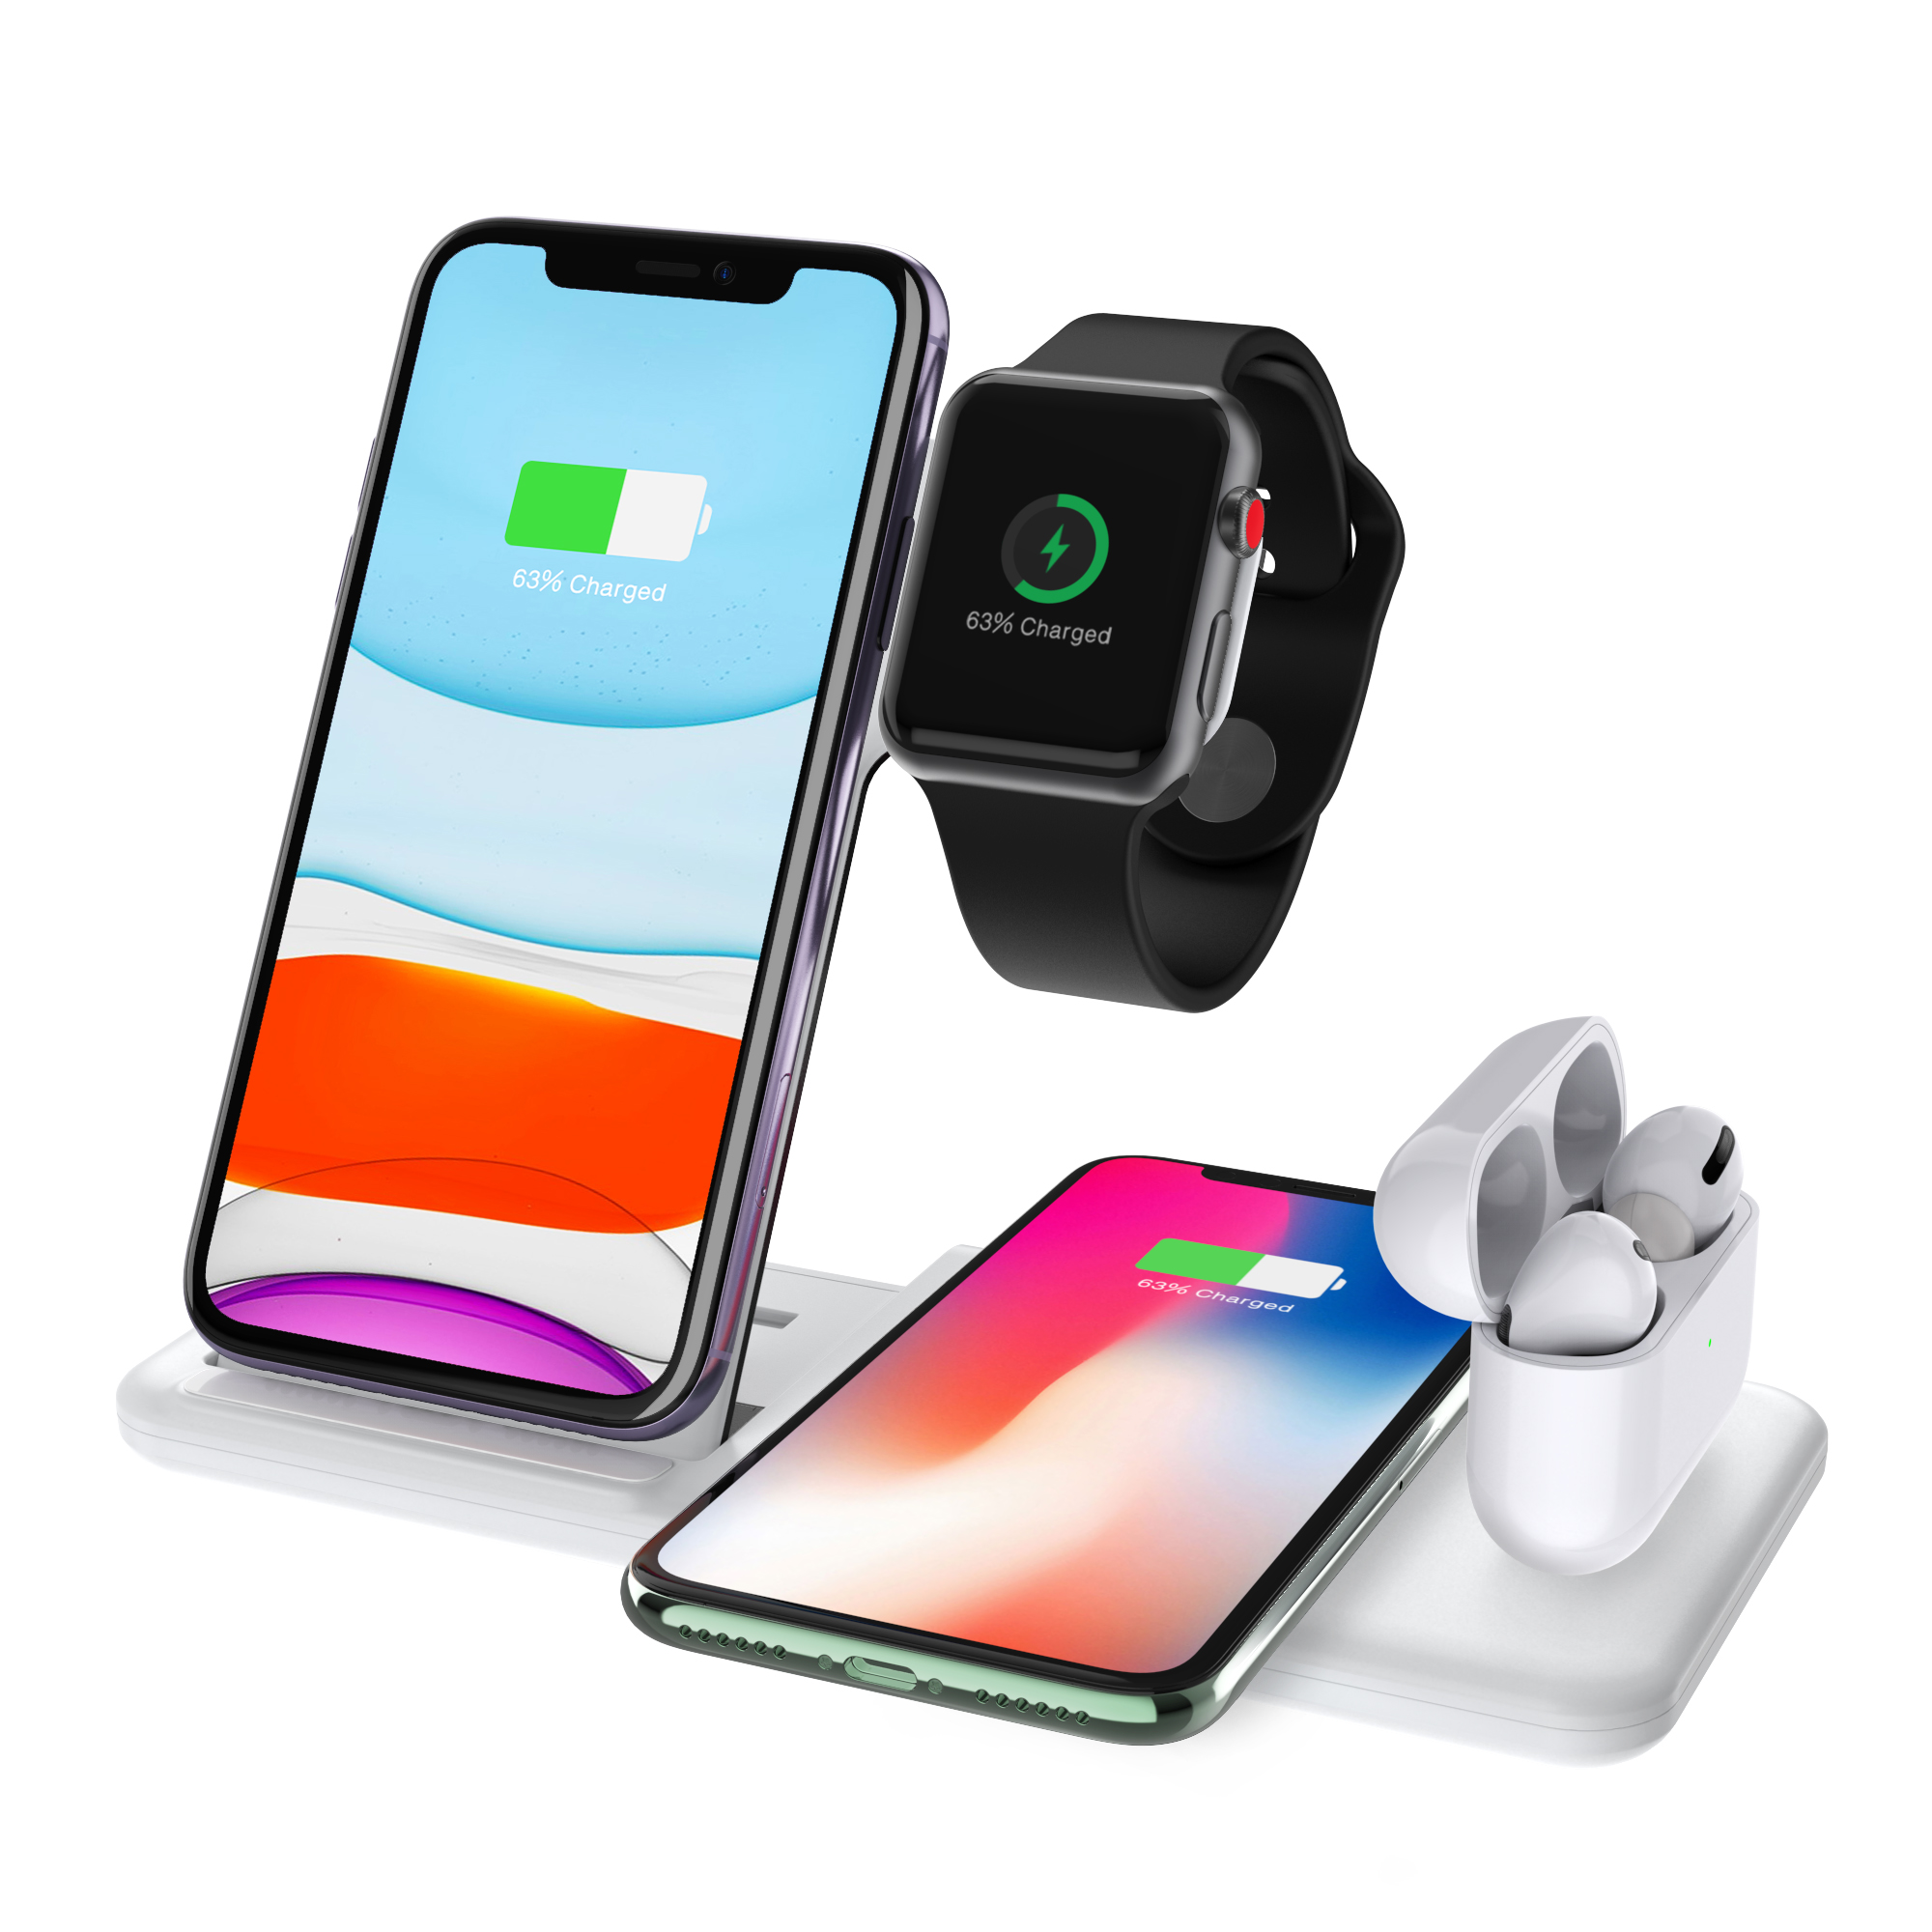 4-In-1 QI Fast Wireless Charger Dock For iPhone Apple Watch iWatch for Airpods Charger Holder Stand white